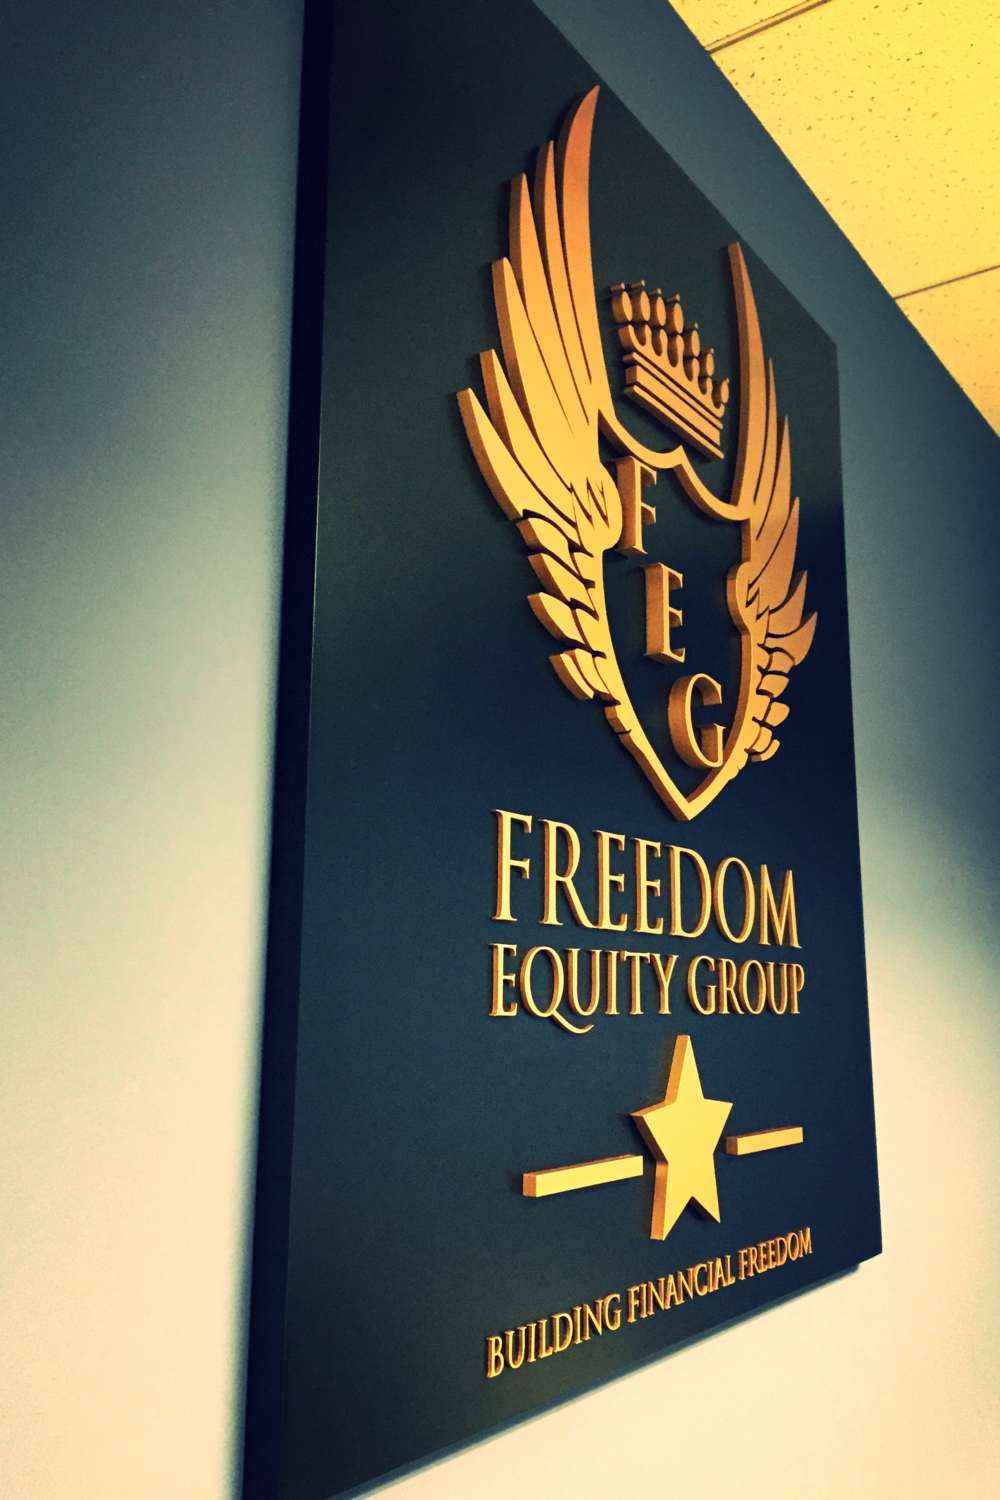 FreedomEquityGroup_WoodlandHills_LobbySign_PremiumSignSolutions